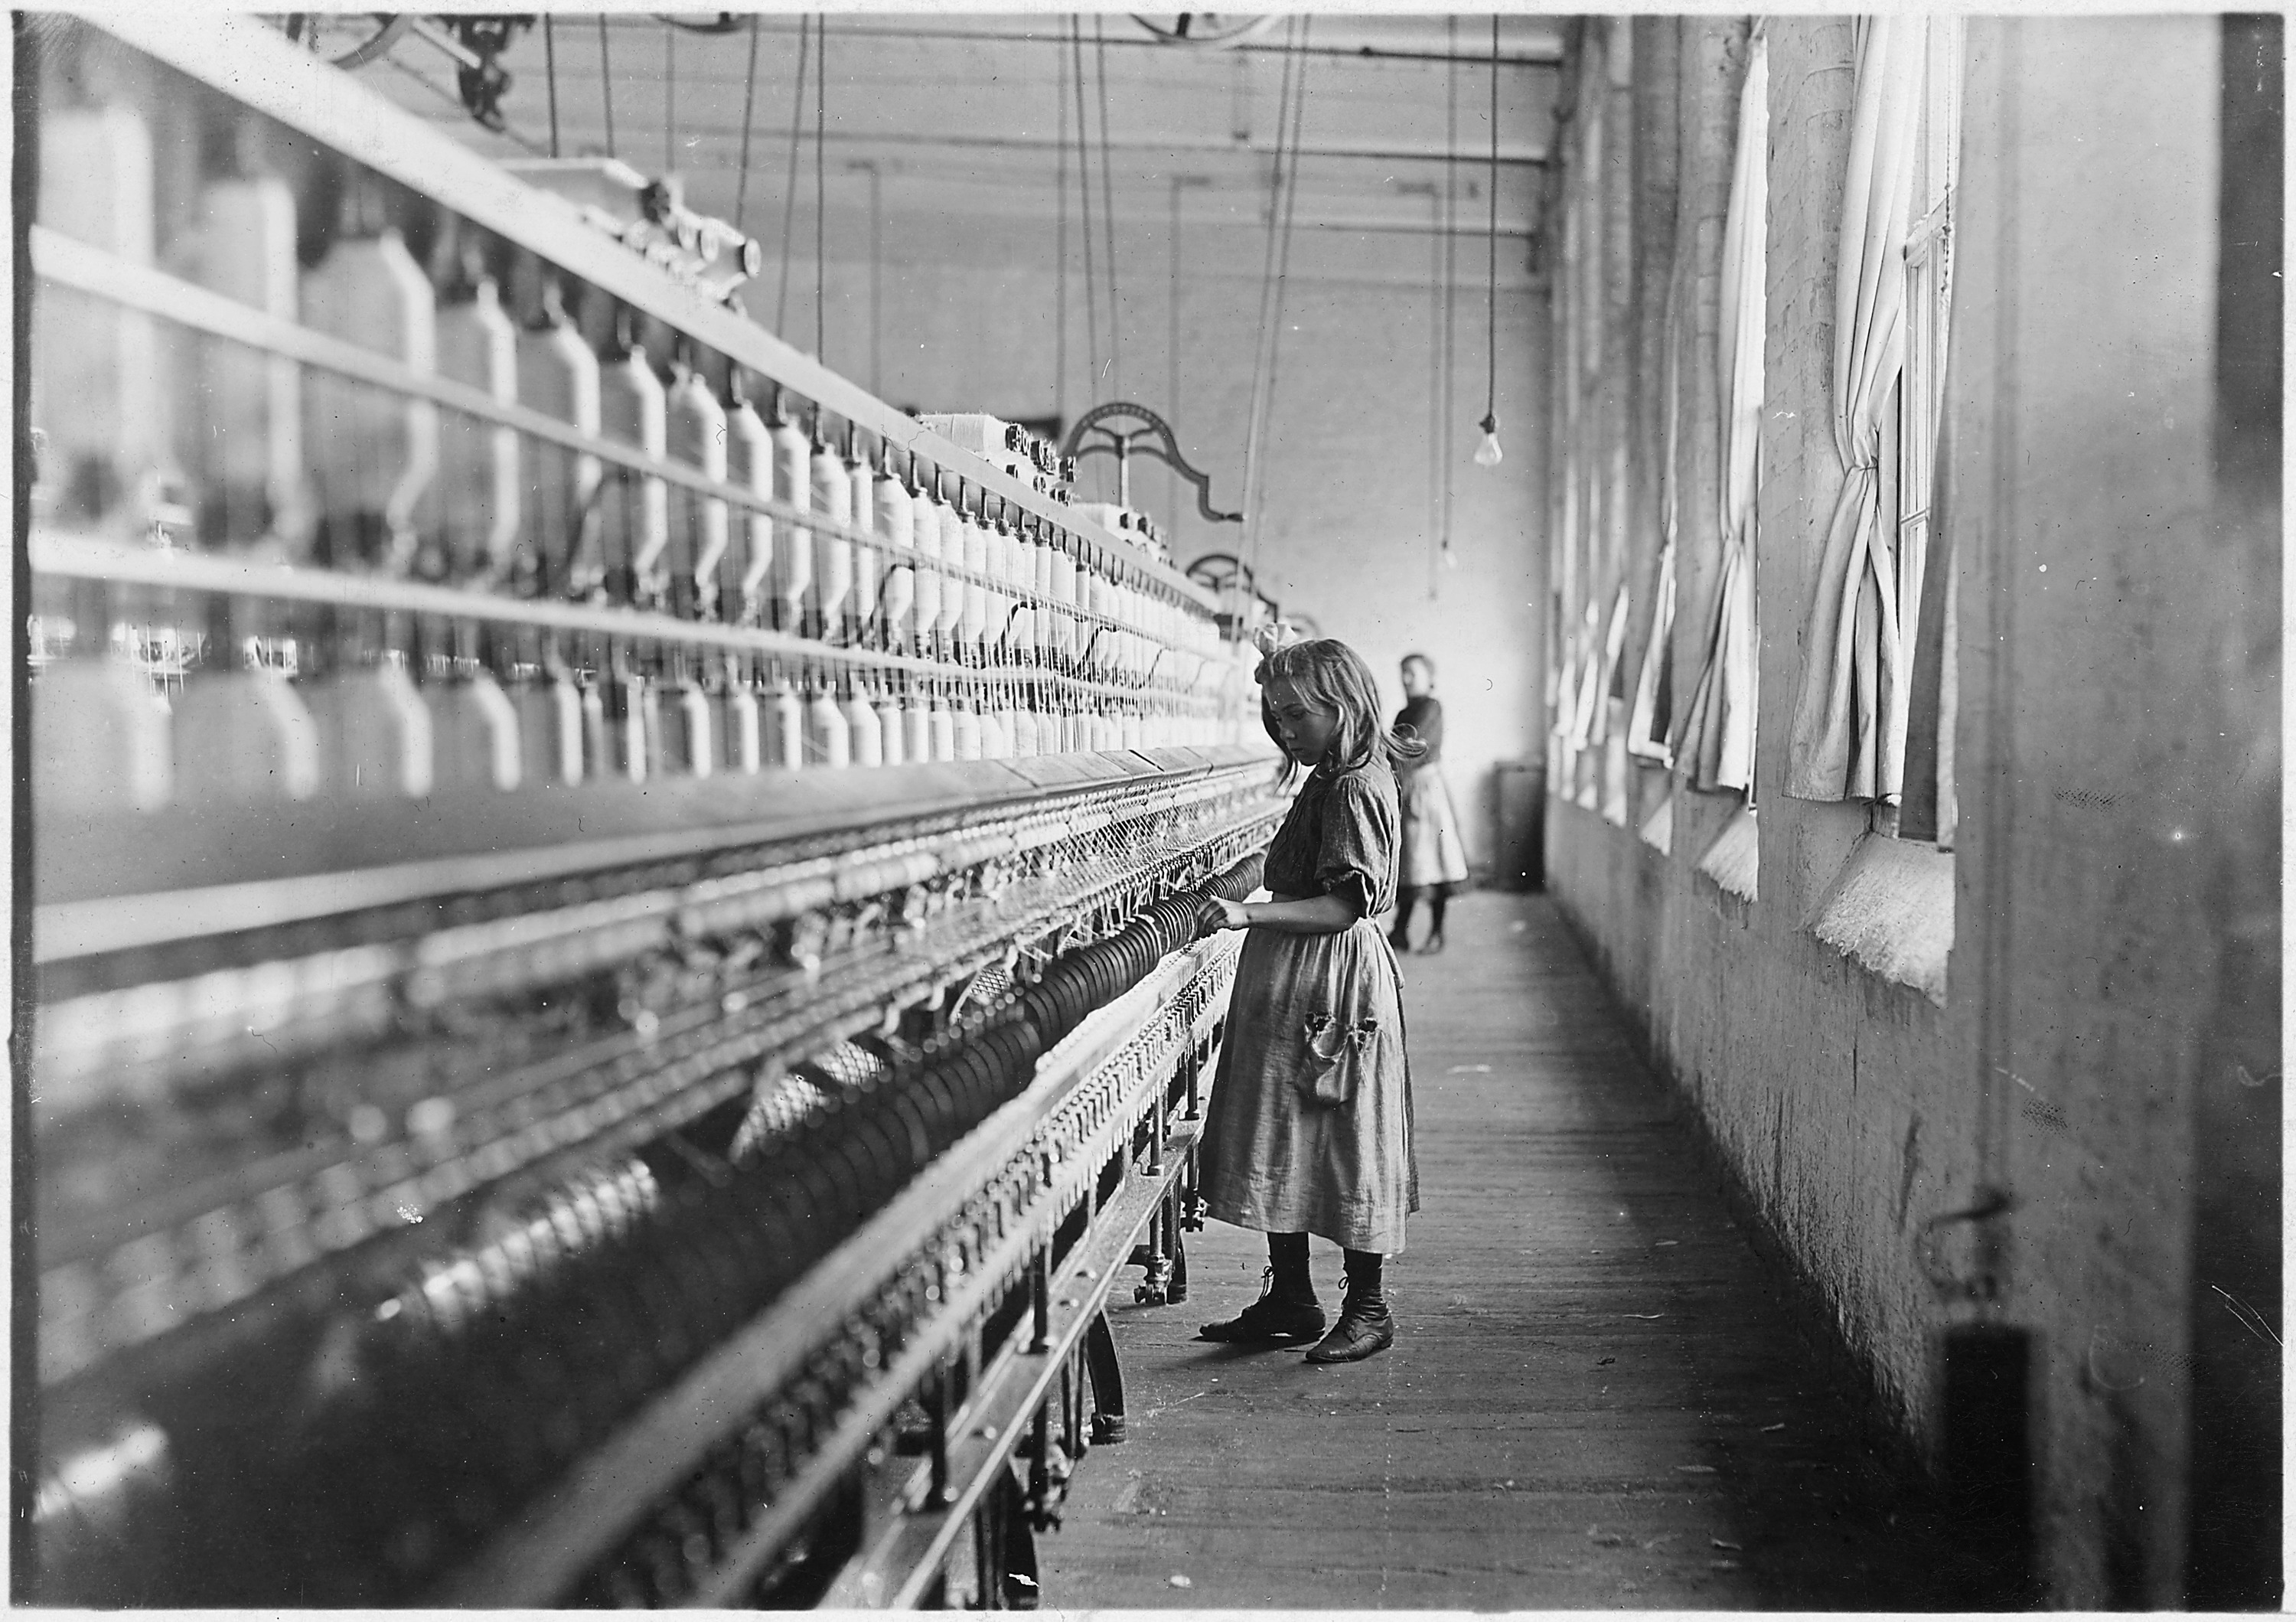 Sadie Pfeifer, young girl working in Lancaster Cotton Mills, South Carolina, 1908